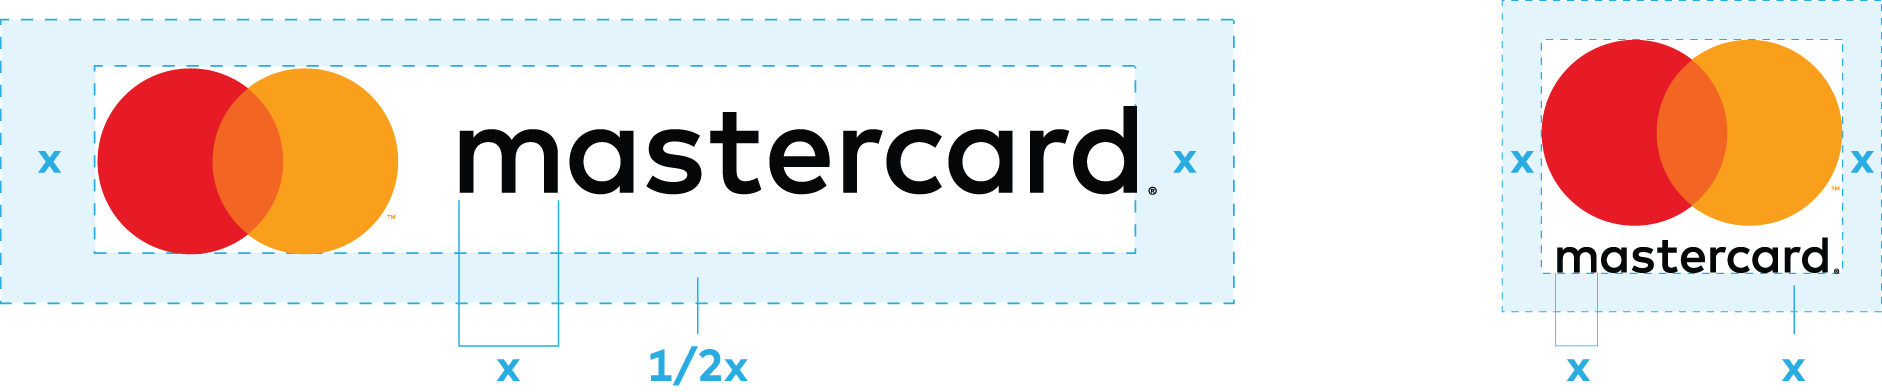 Images of minimum free space specifications for the horizontal and vertical Mastercard logos